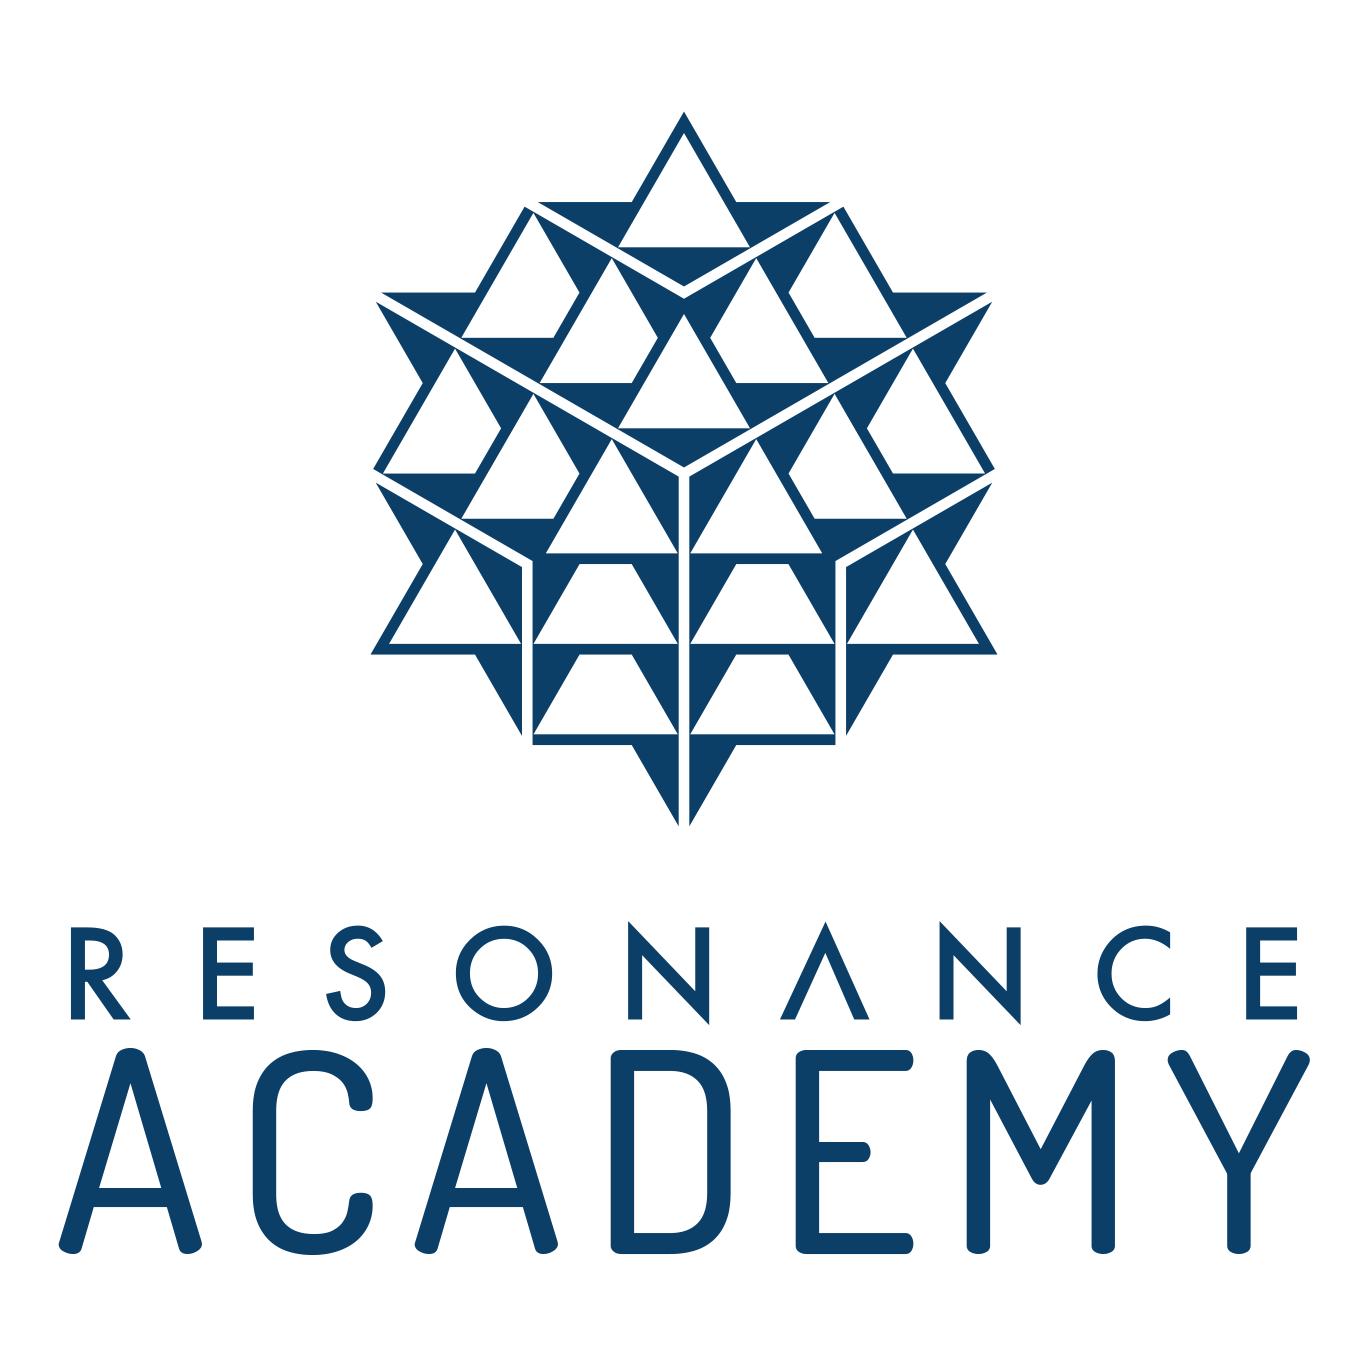 Resonance Academy logo